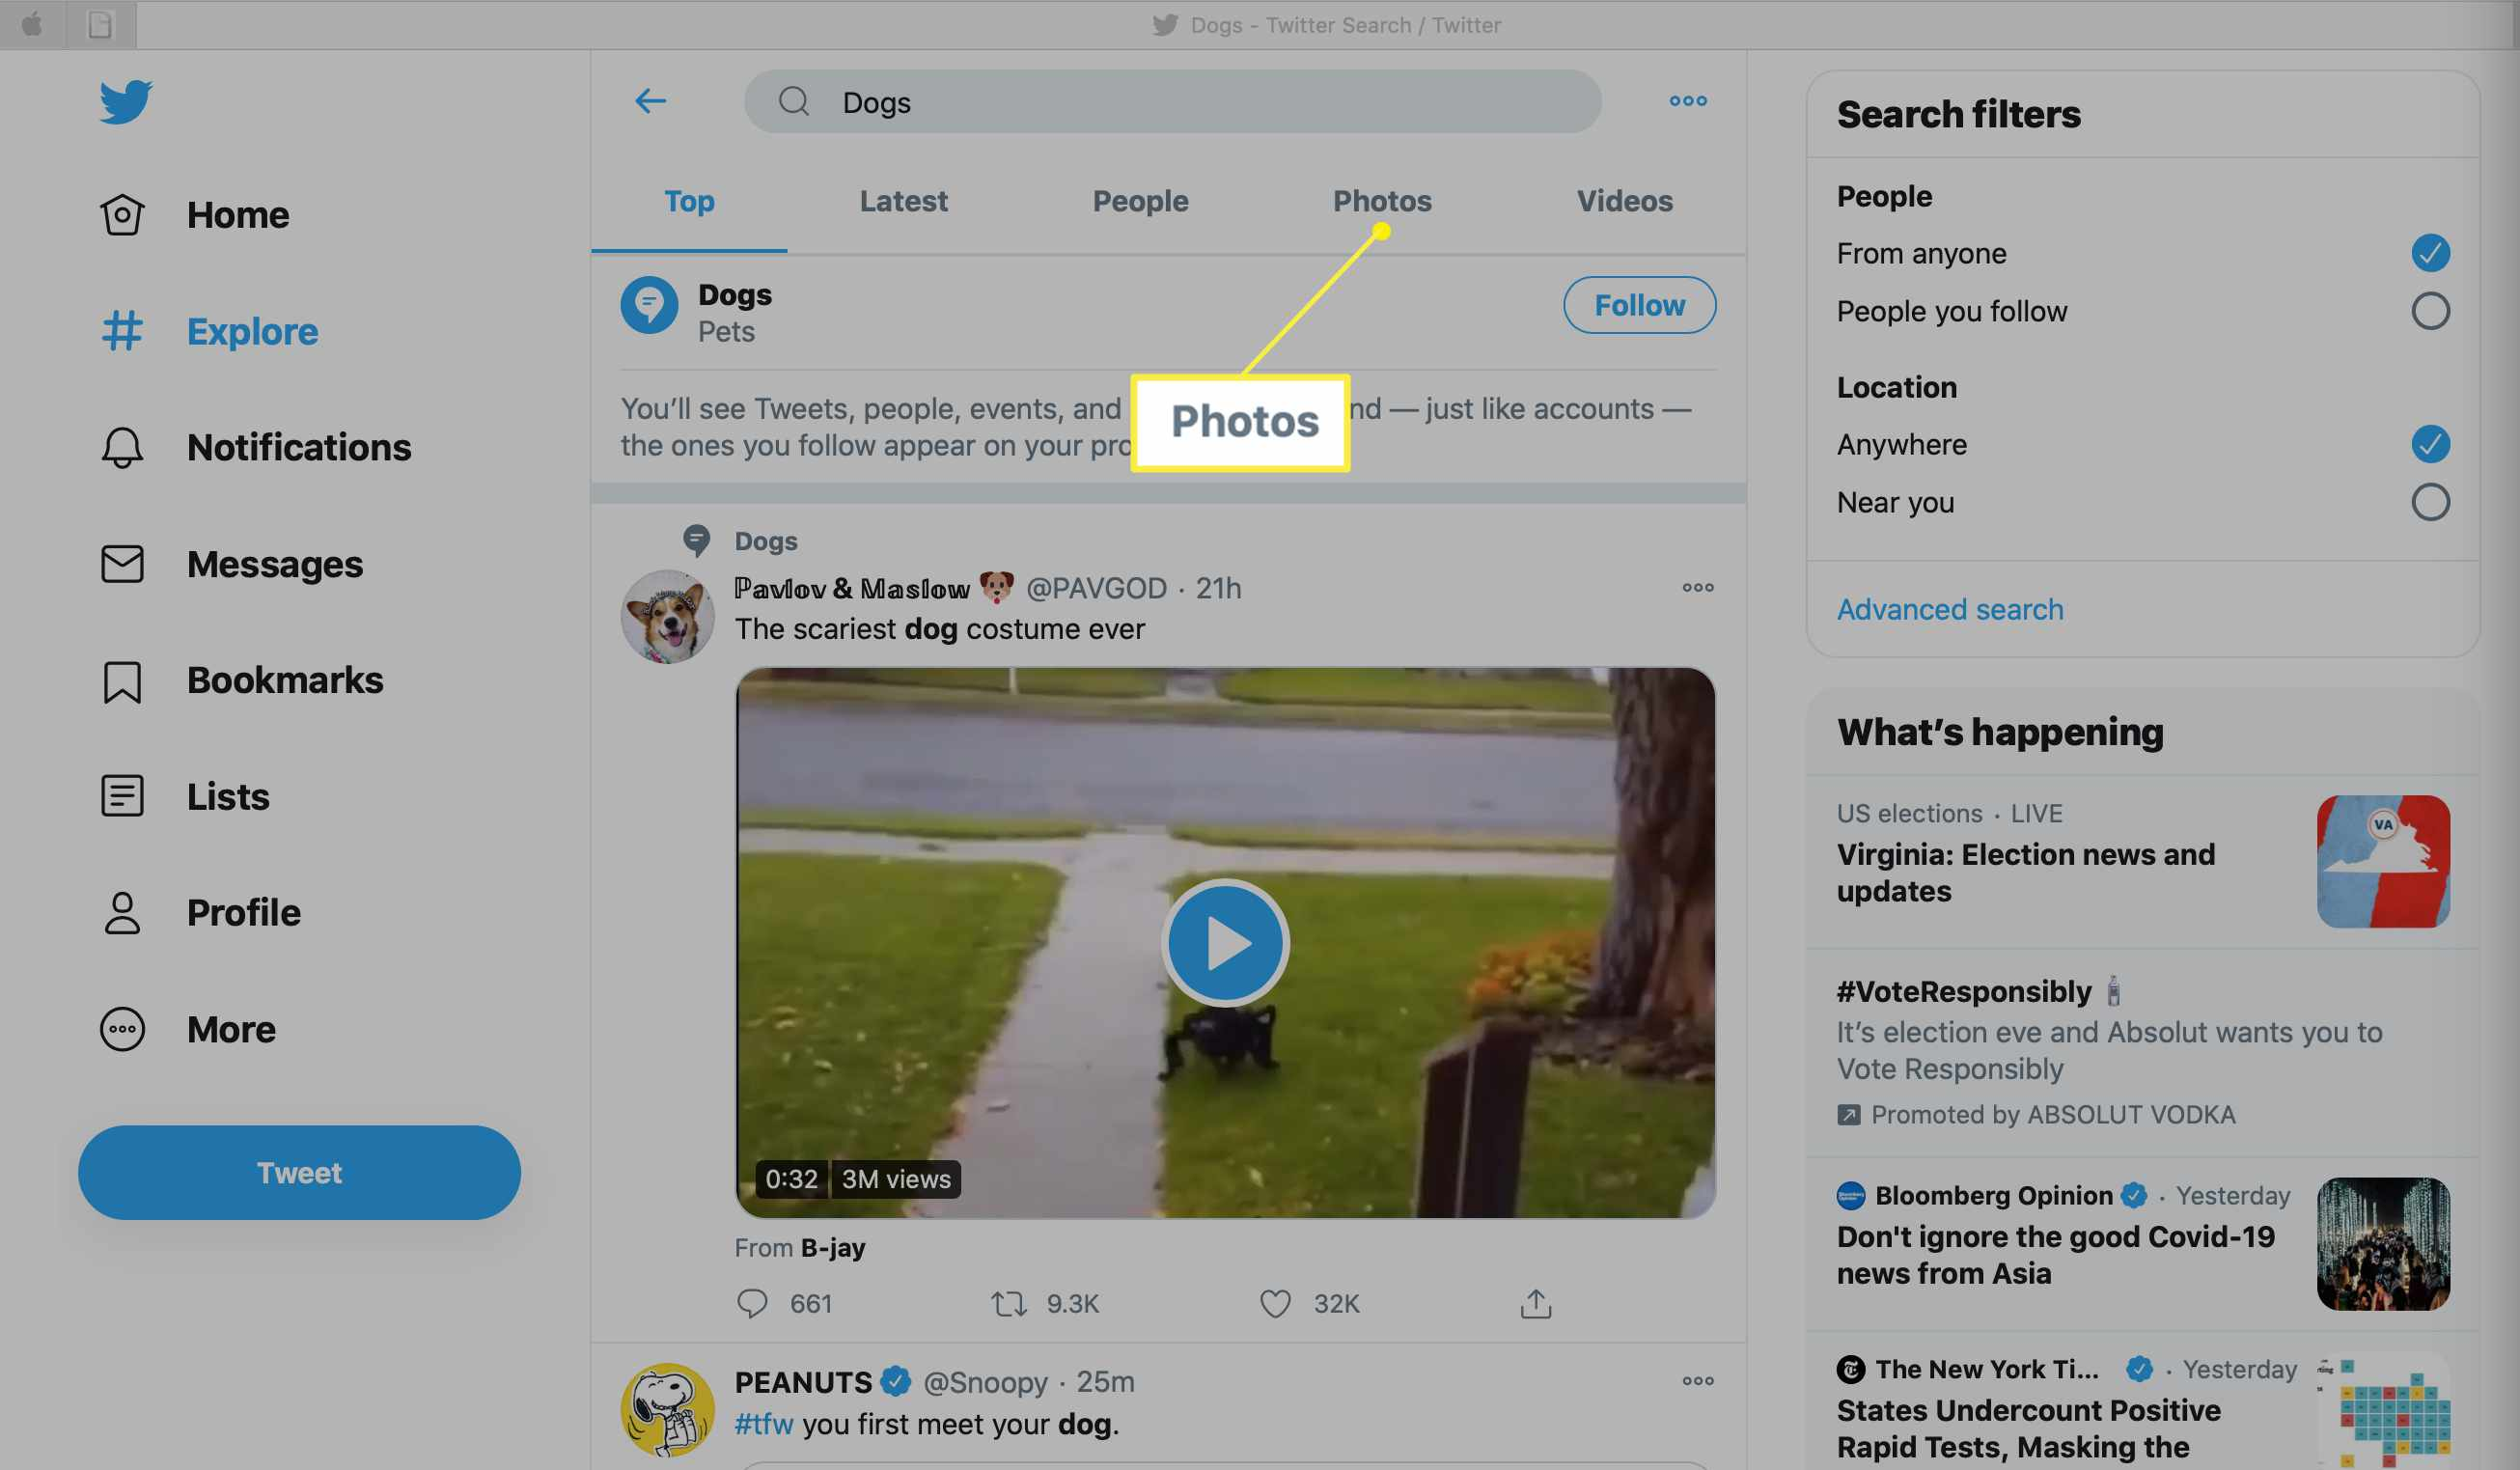 Twitter.com showing Photos selected